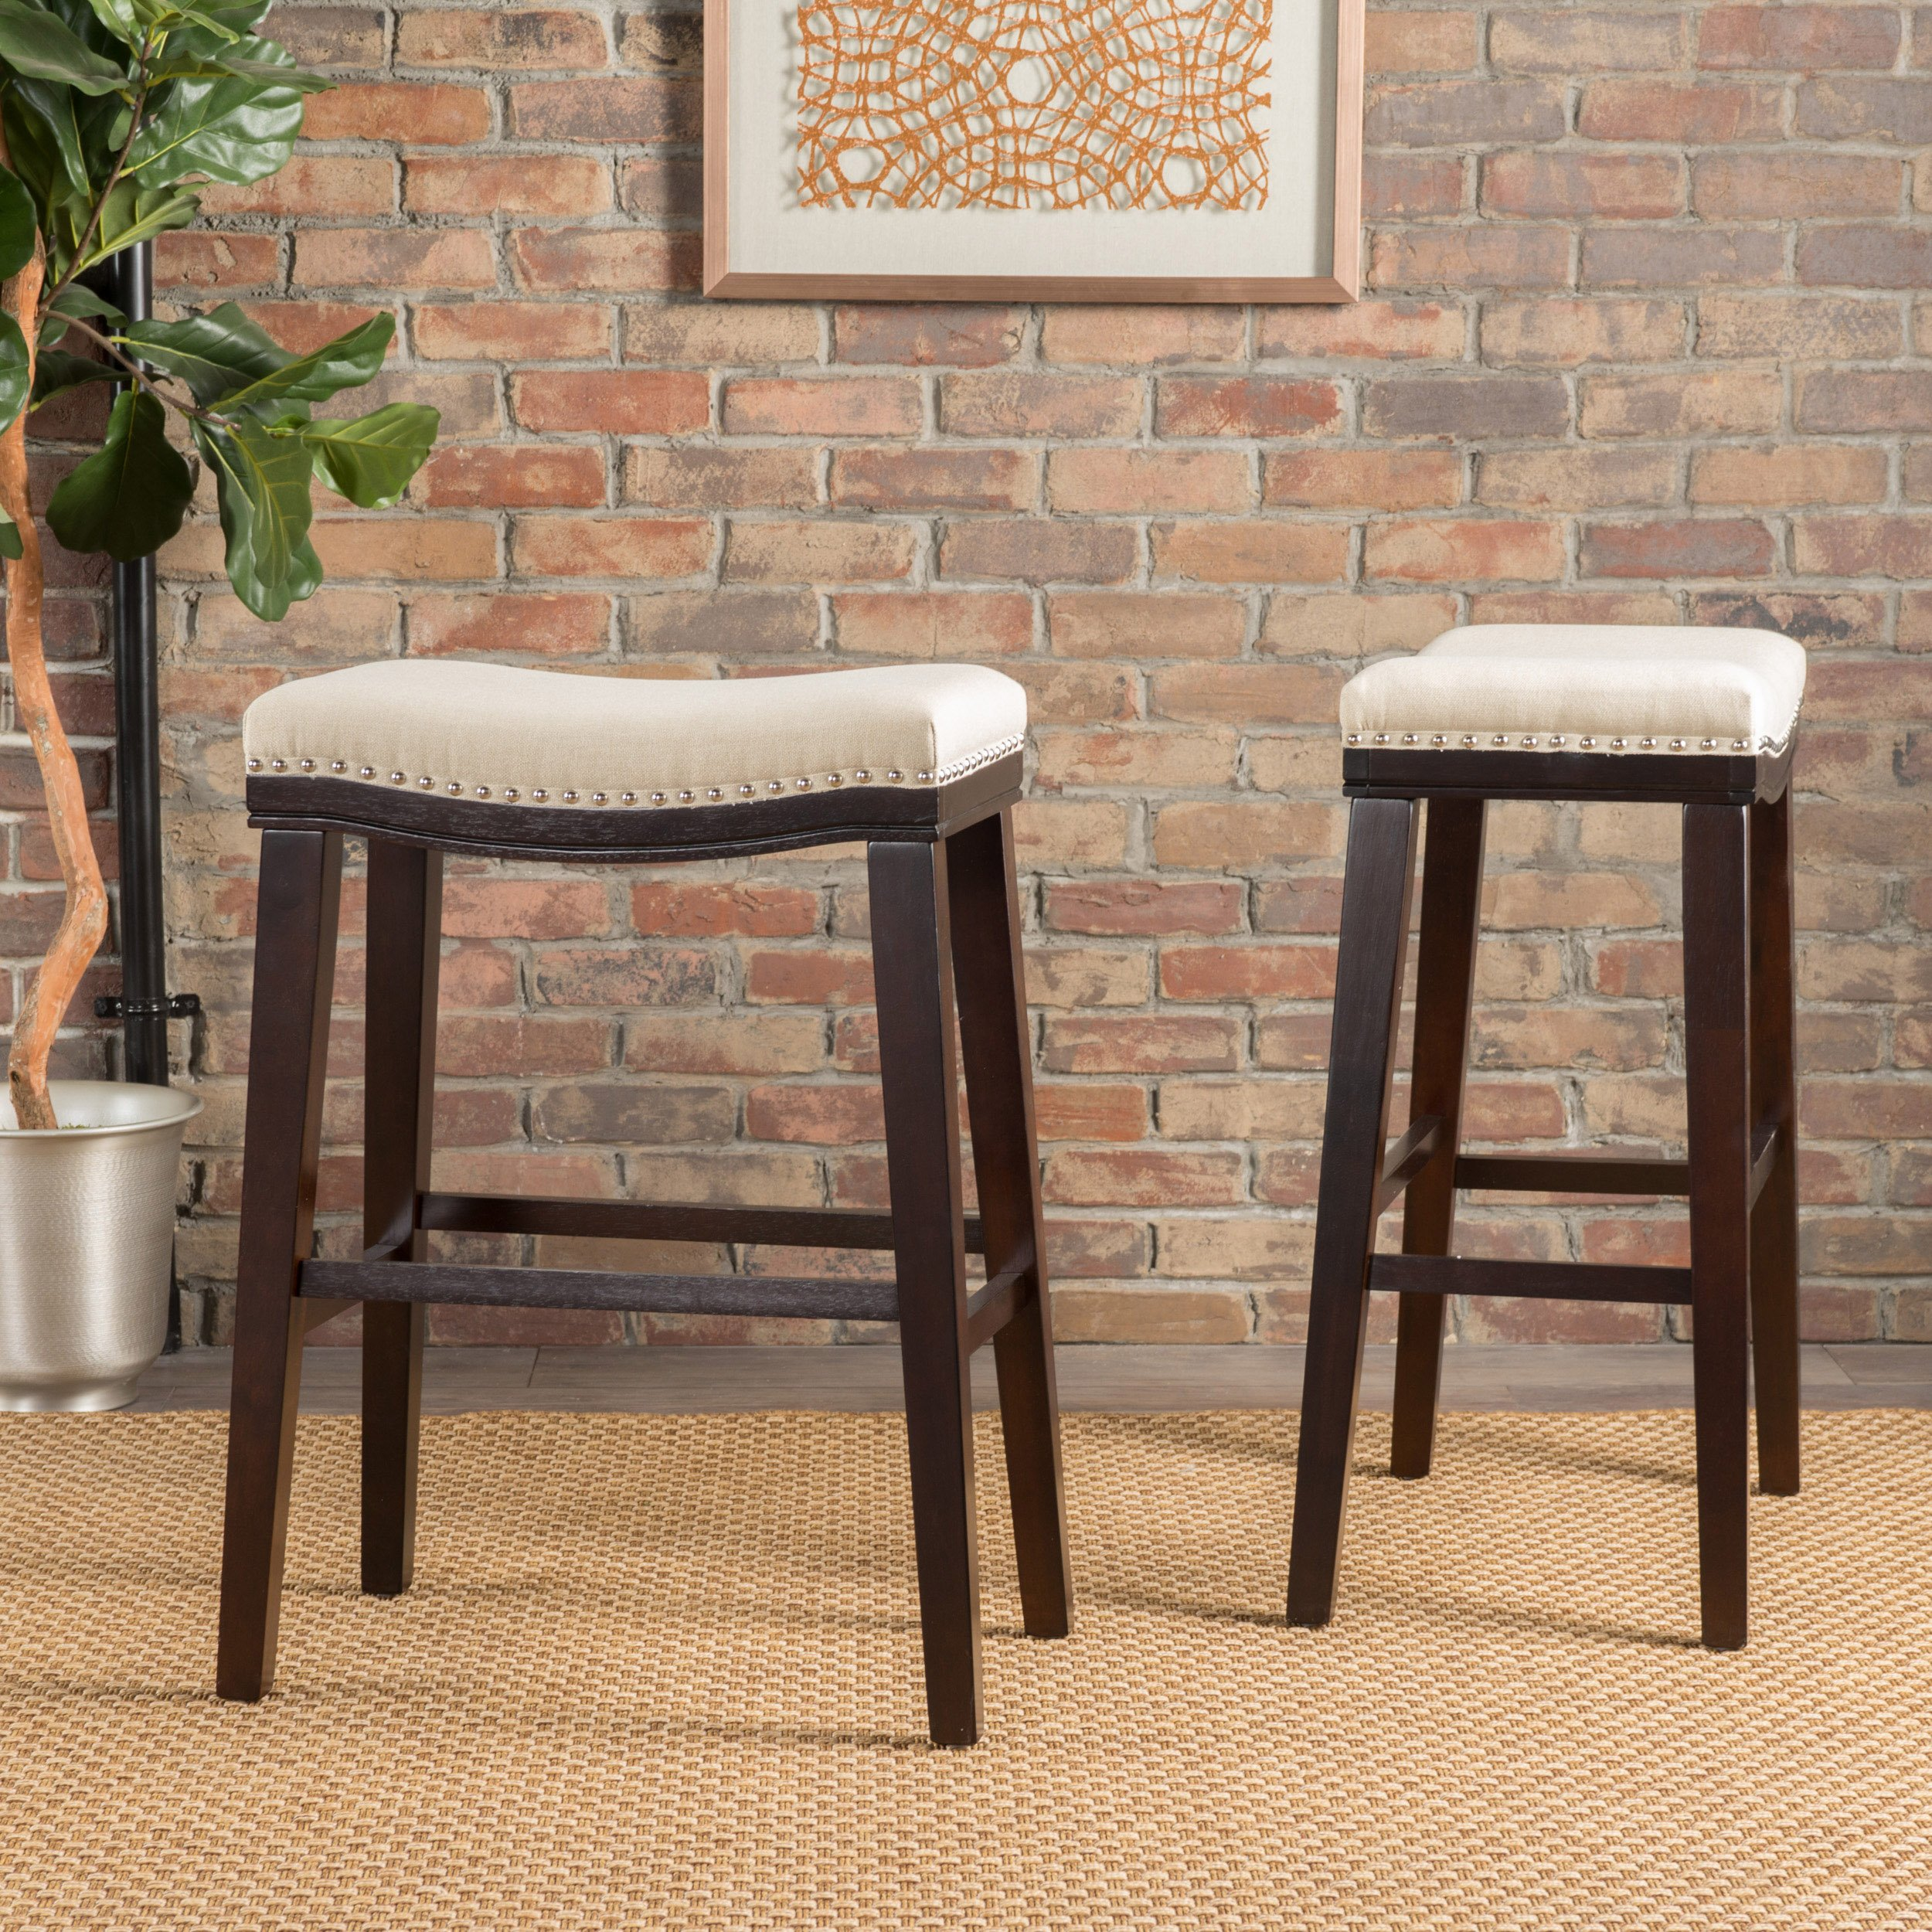 Christopher Knight Home 300575 Rosalie Beige Fabric Saddle Stool (Set of 2) by Christopher Knight Home